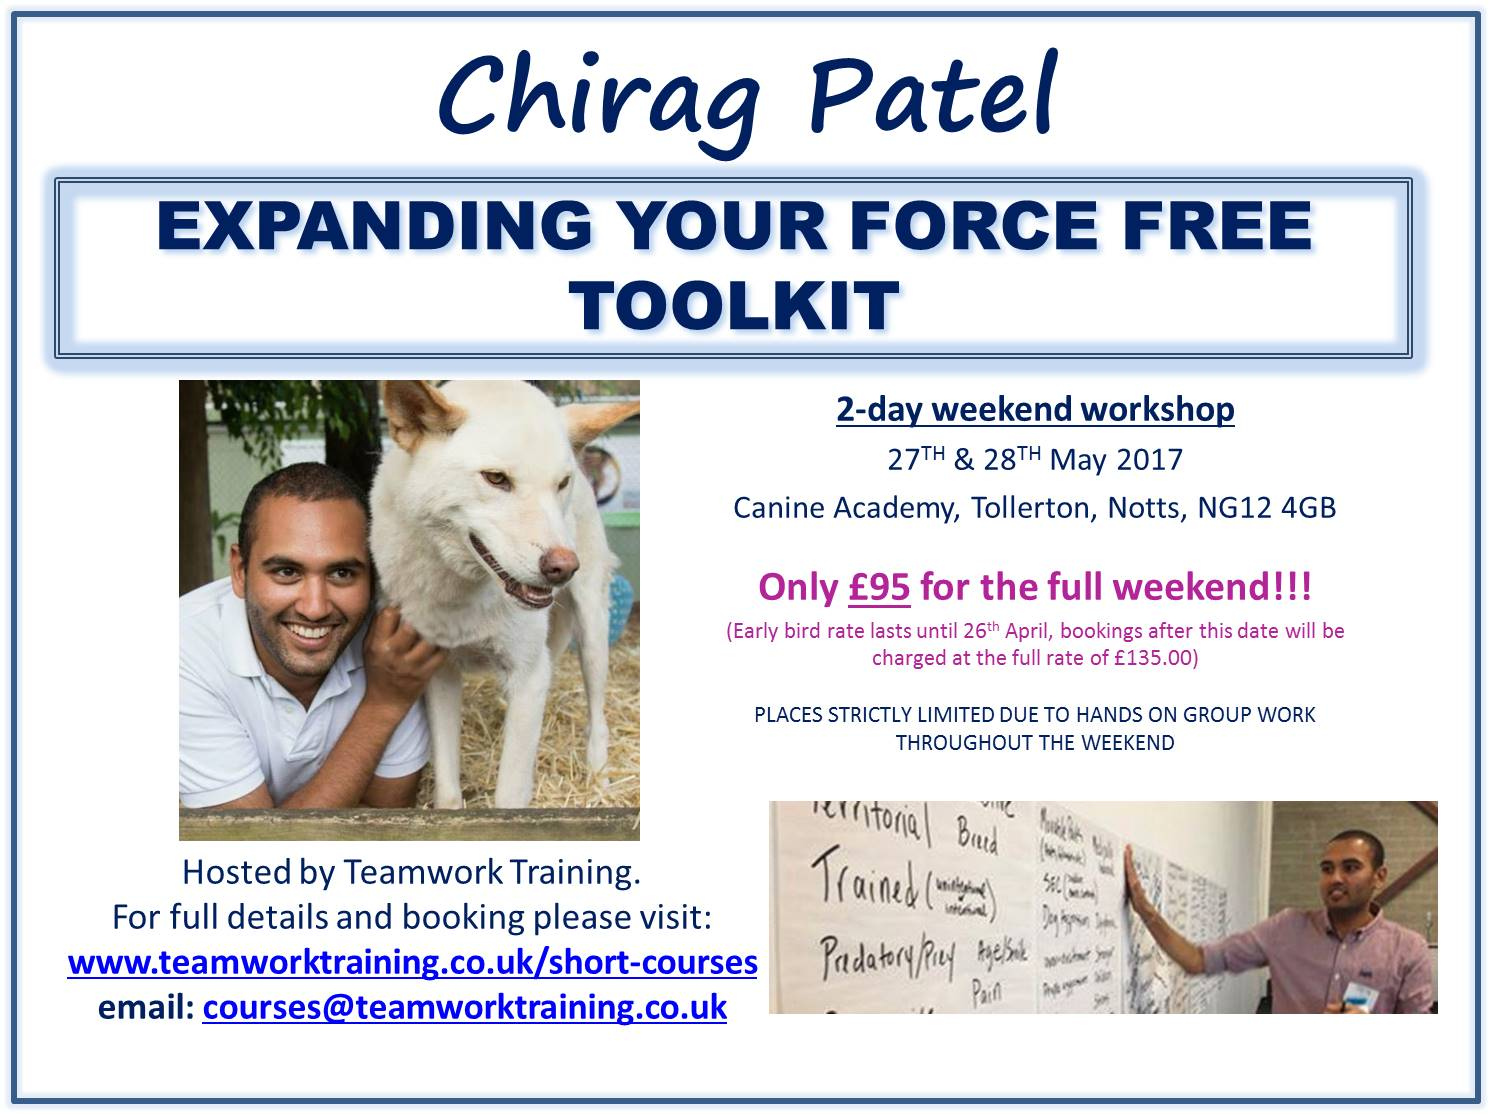 chirag seminar facebook advert 2017620